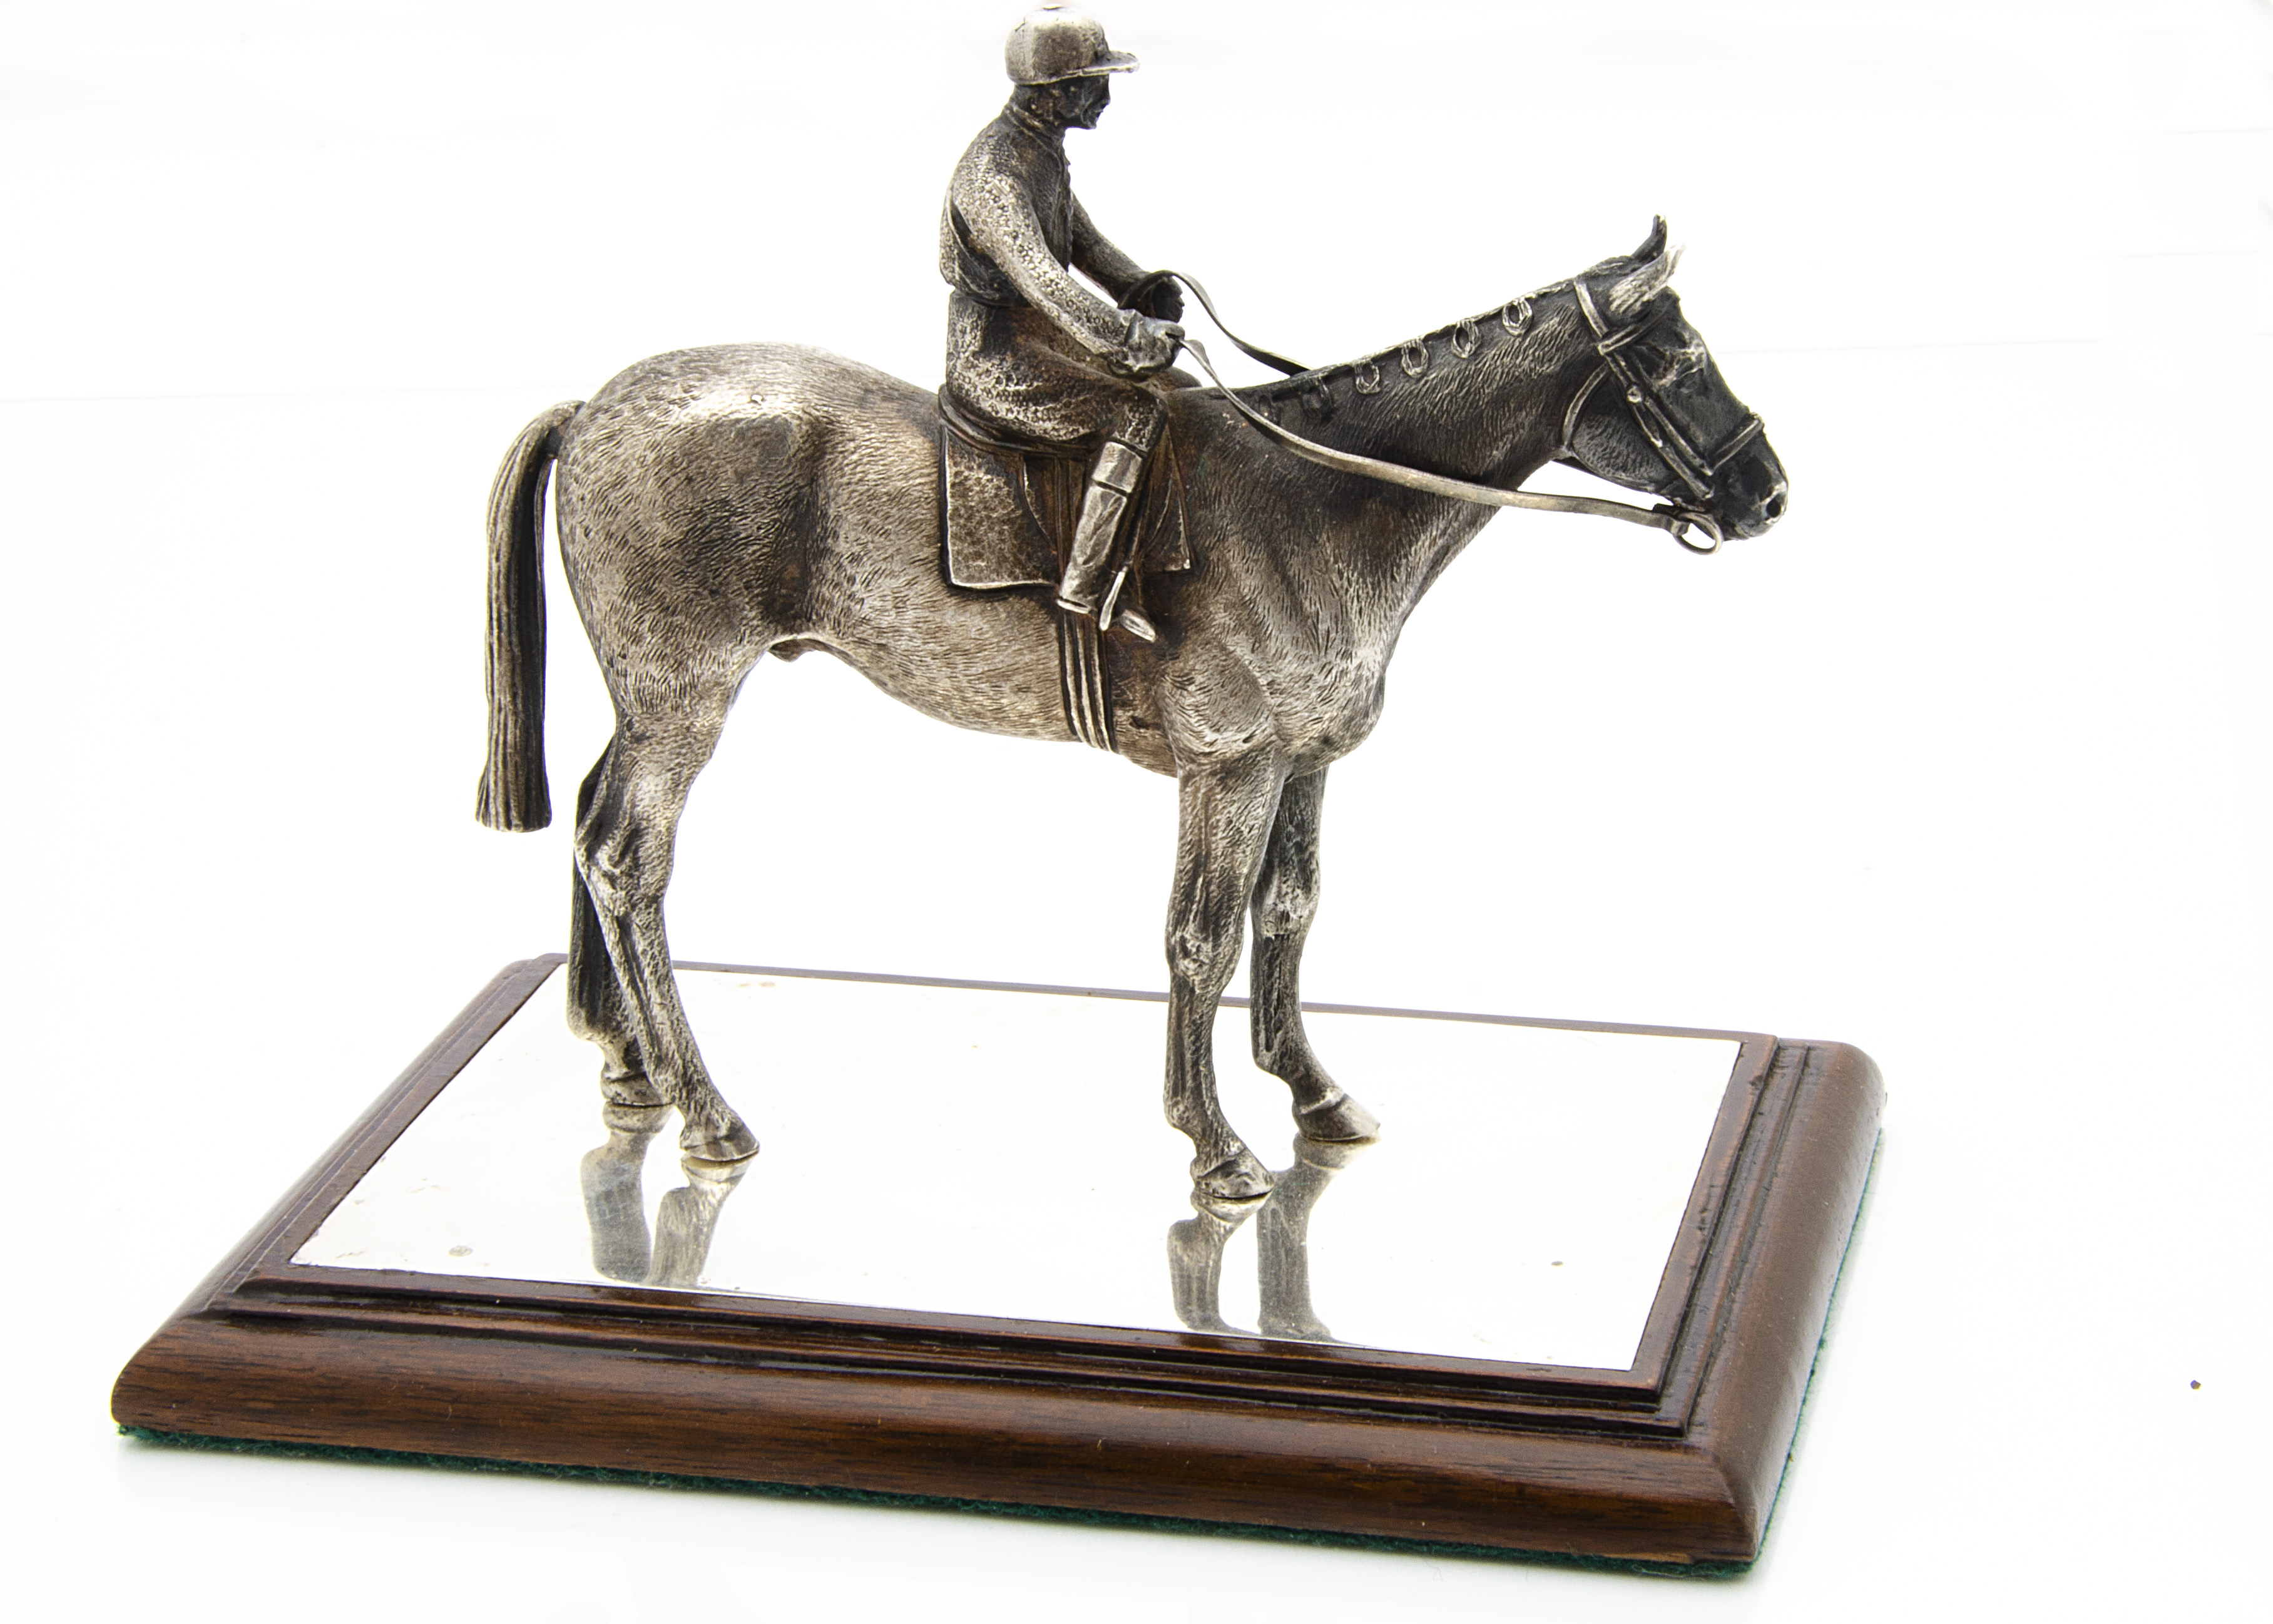 Lot 413 - A 1990s silver horseracing desk ornament by W&W, naturalistically modelled stood with a jockey on